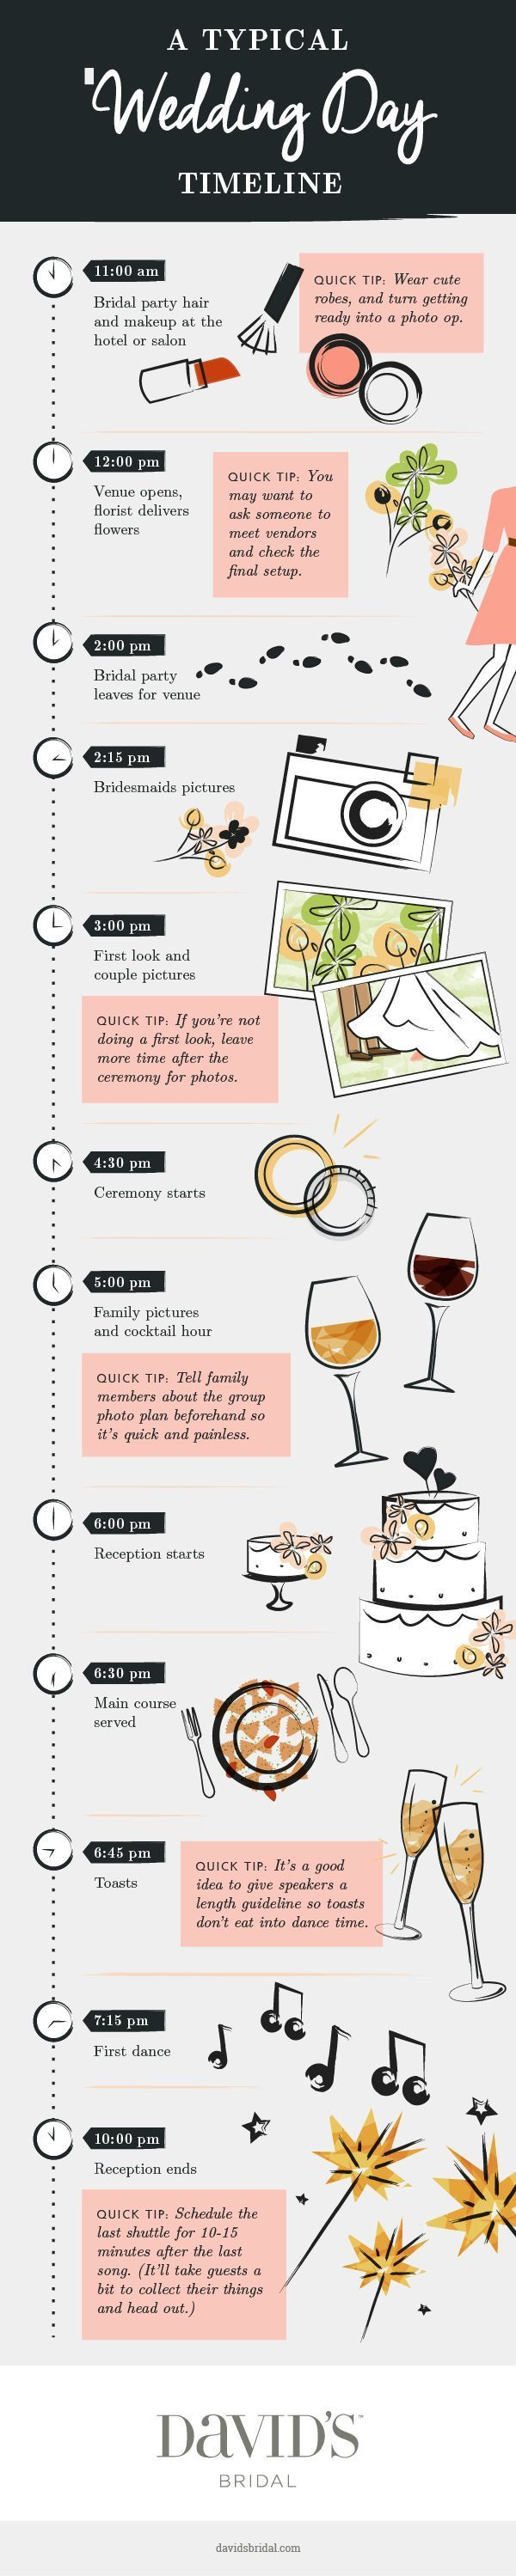 You've planned your wedding for months and the day has finally arrived! We're sharing a typical wedding day timeline to ensure the day goes smoothly! #weddingtips